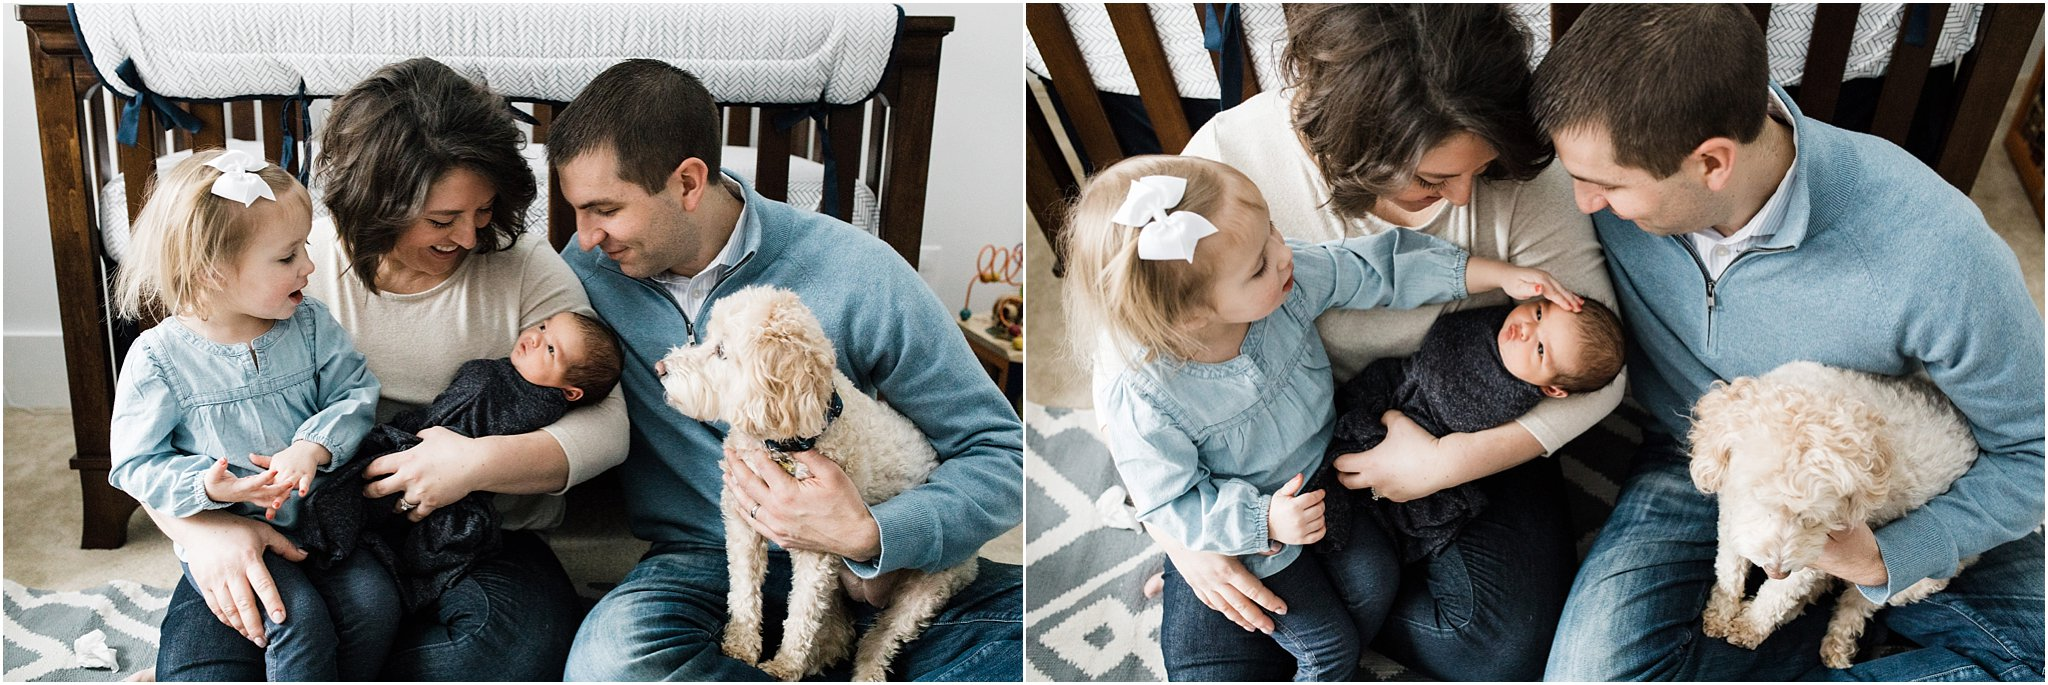 natural family photos with newborn baby boy